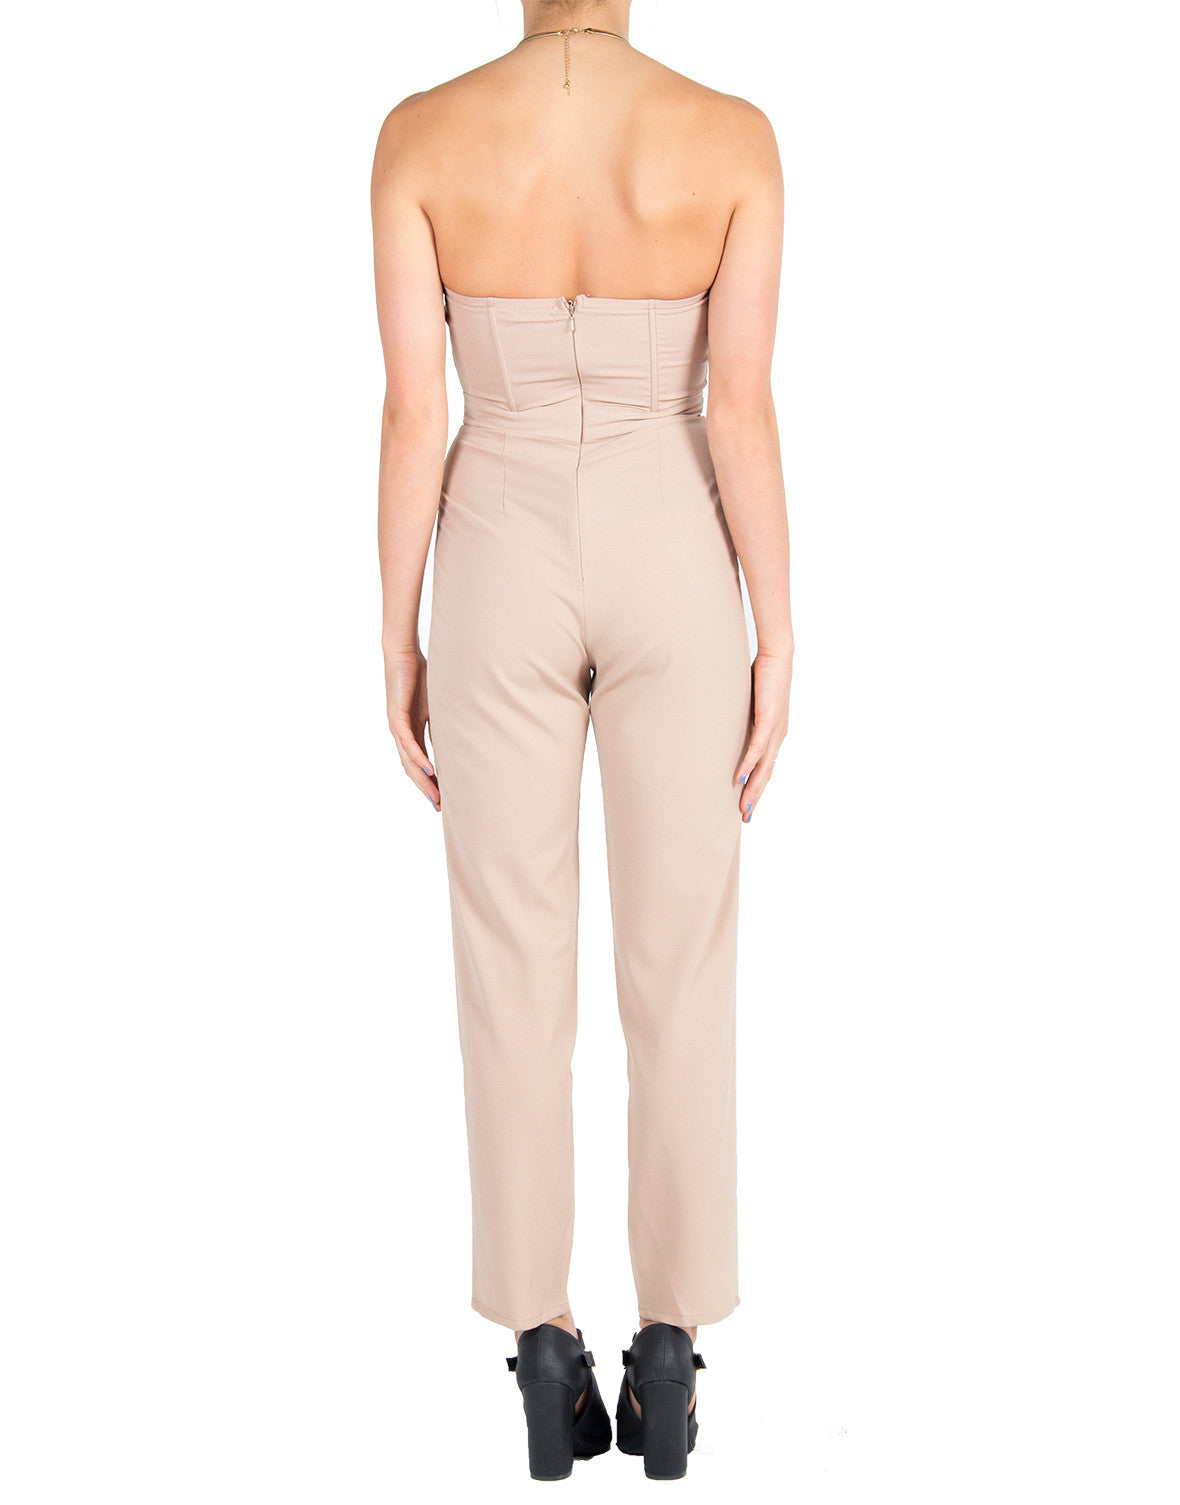 Gold Plated Jumpsuit - Nude